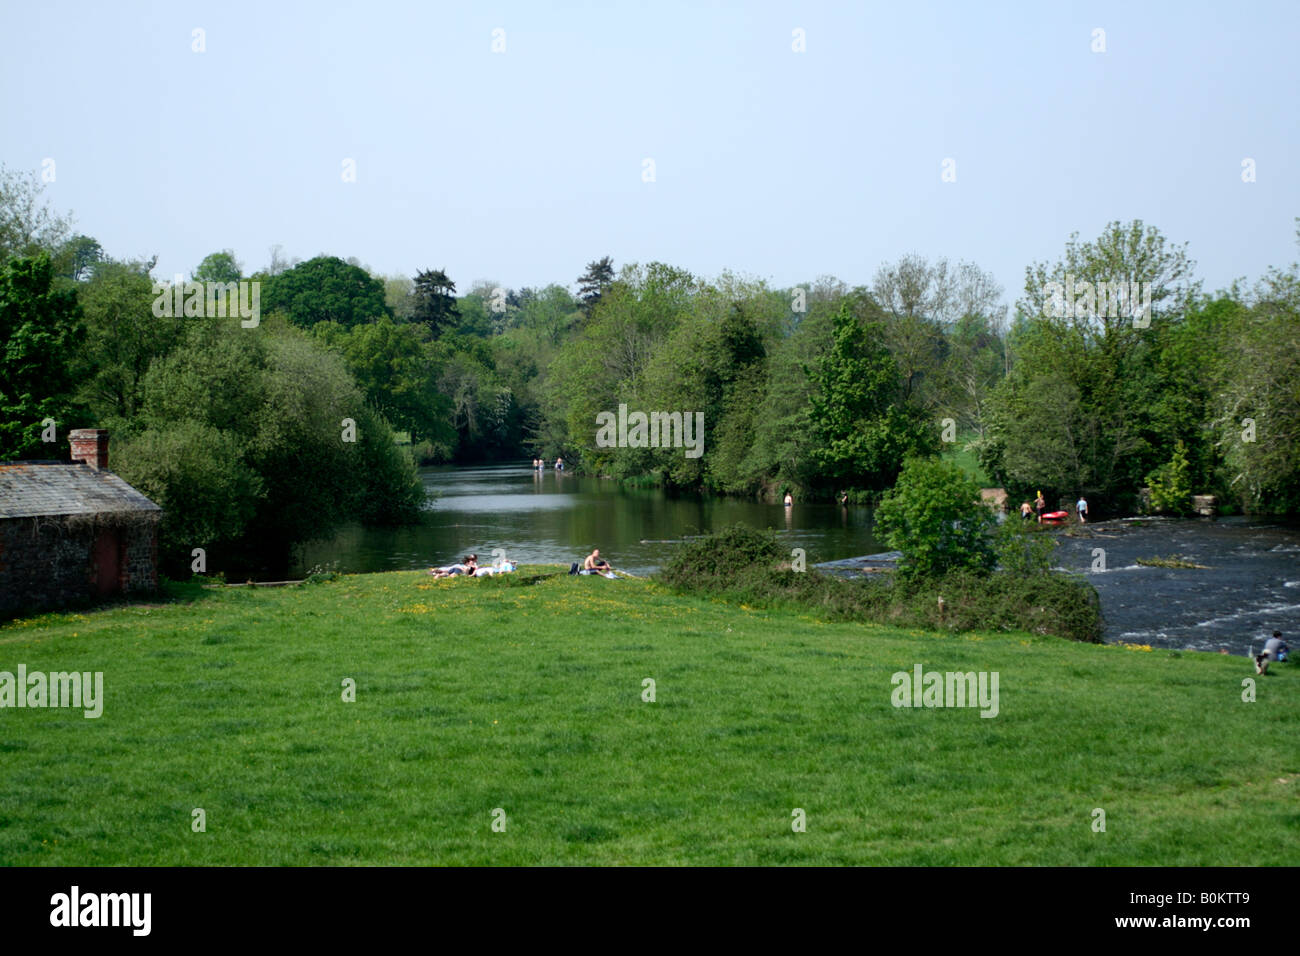 THE RIVER EXE AT THE HEATHCOAT FACTORY WEIR TIVERTON DEVON ON A HOT MAY DAY - Stock Image